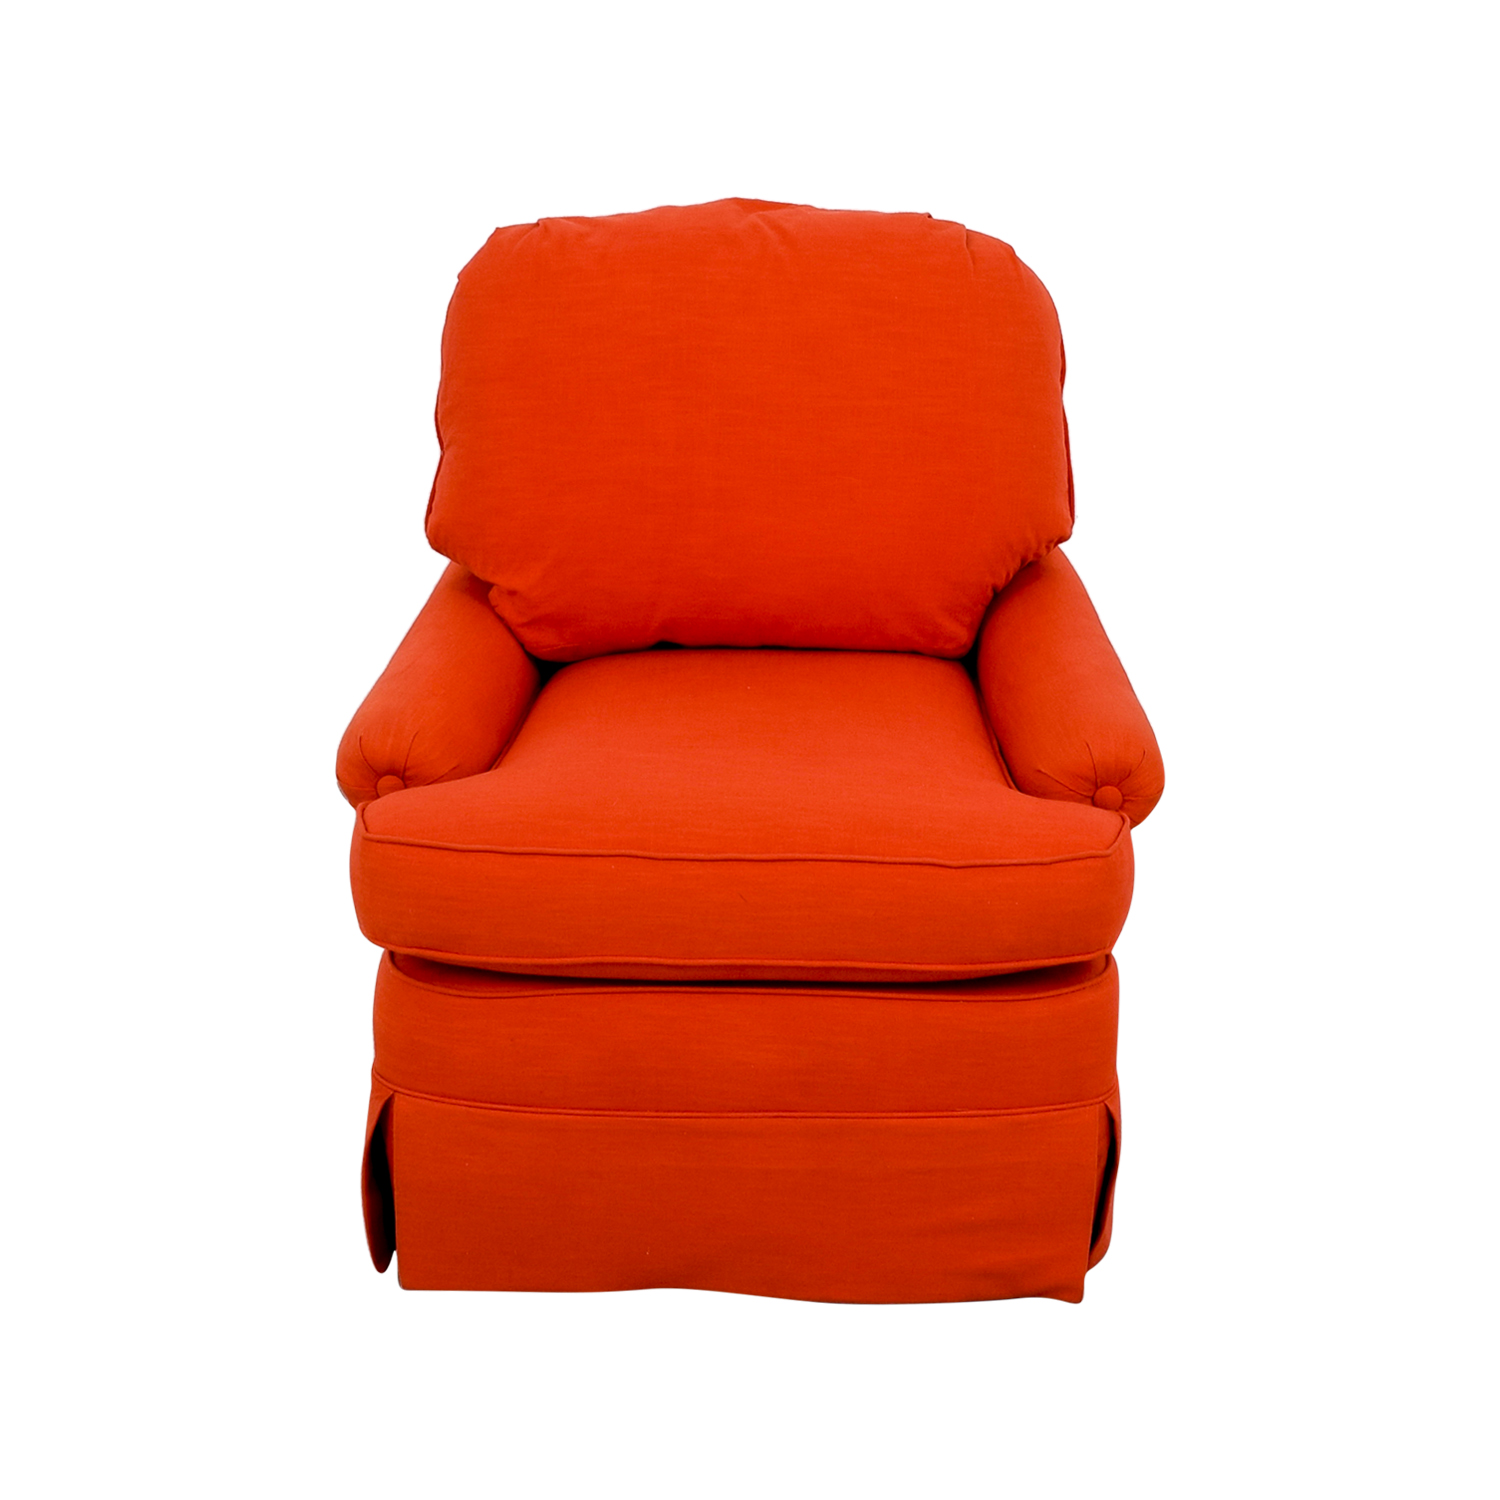 Society Social Society Social Lafayette Swivel Rocker red